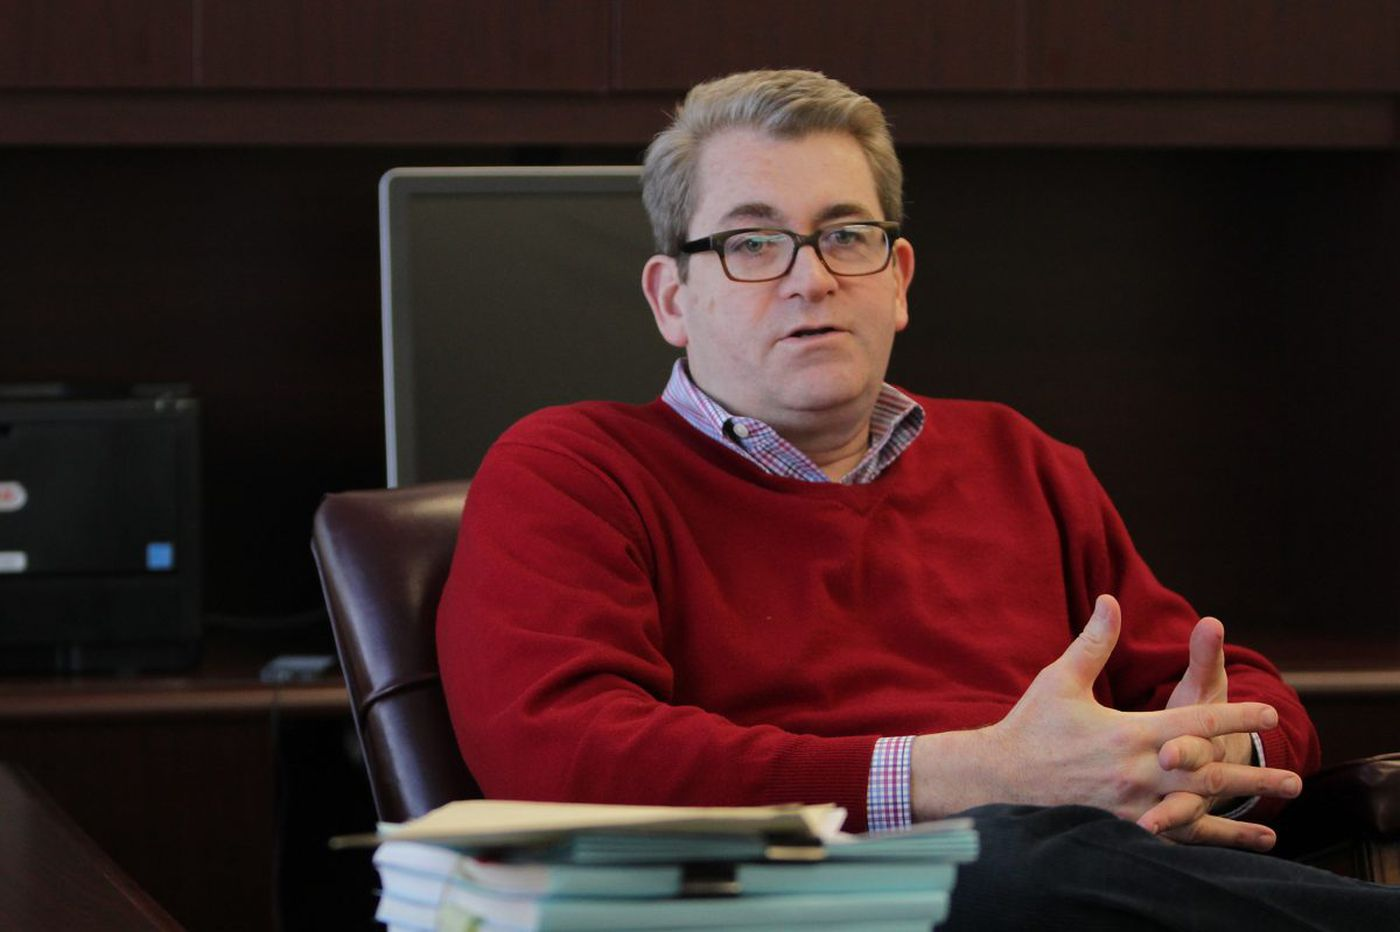 With SRC on way out, Bill Green gets handed a loss by state court